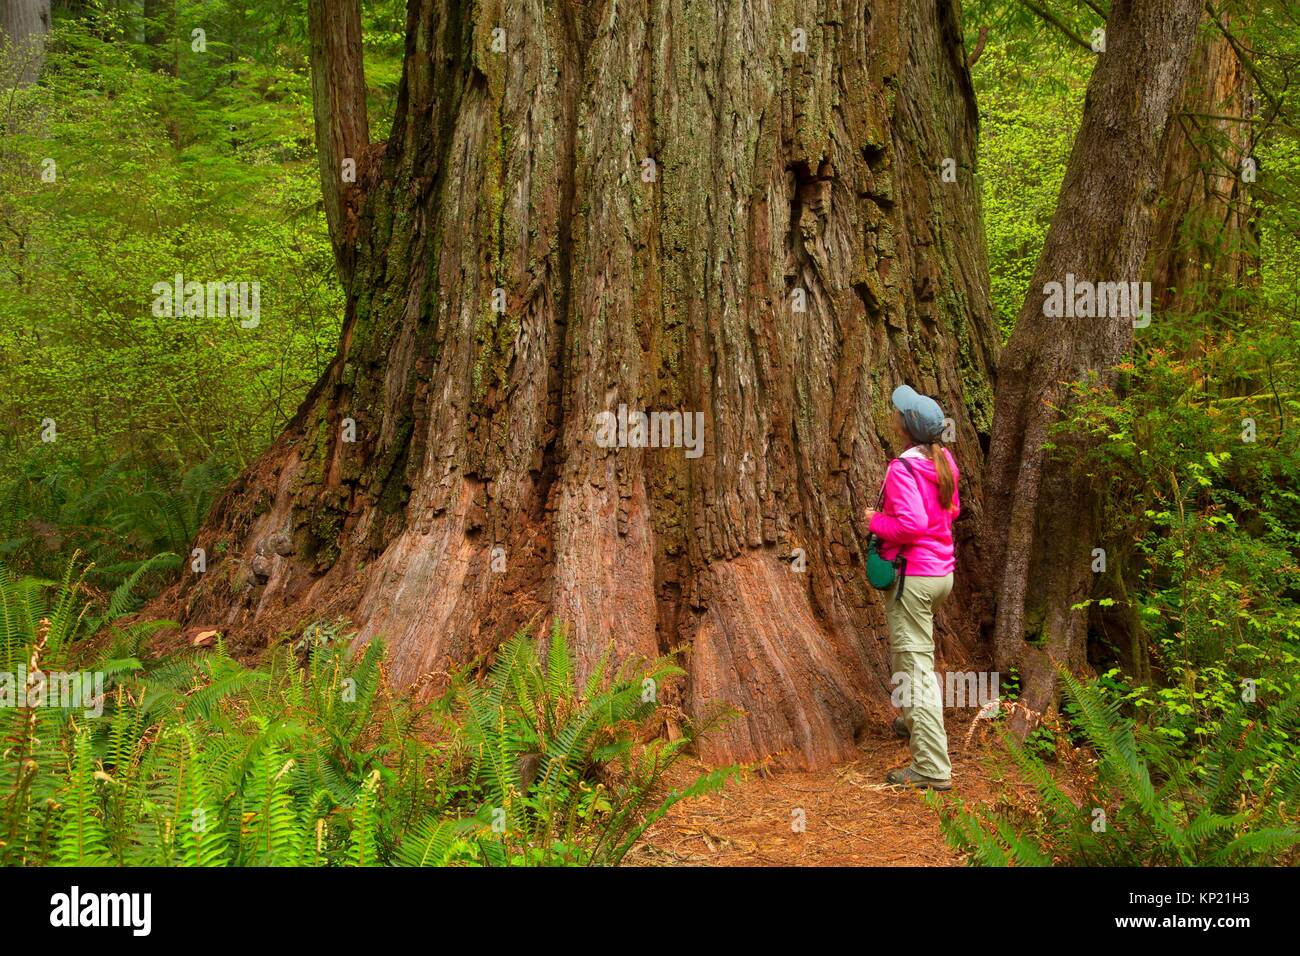 Hiker in Coast redwood (Sequoia sempervirens) forest along Simpson-Reed Discovery Trail, Jedediah Smith Redwoods - Stock Image